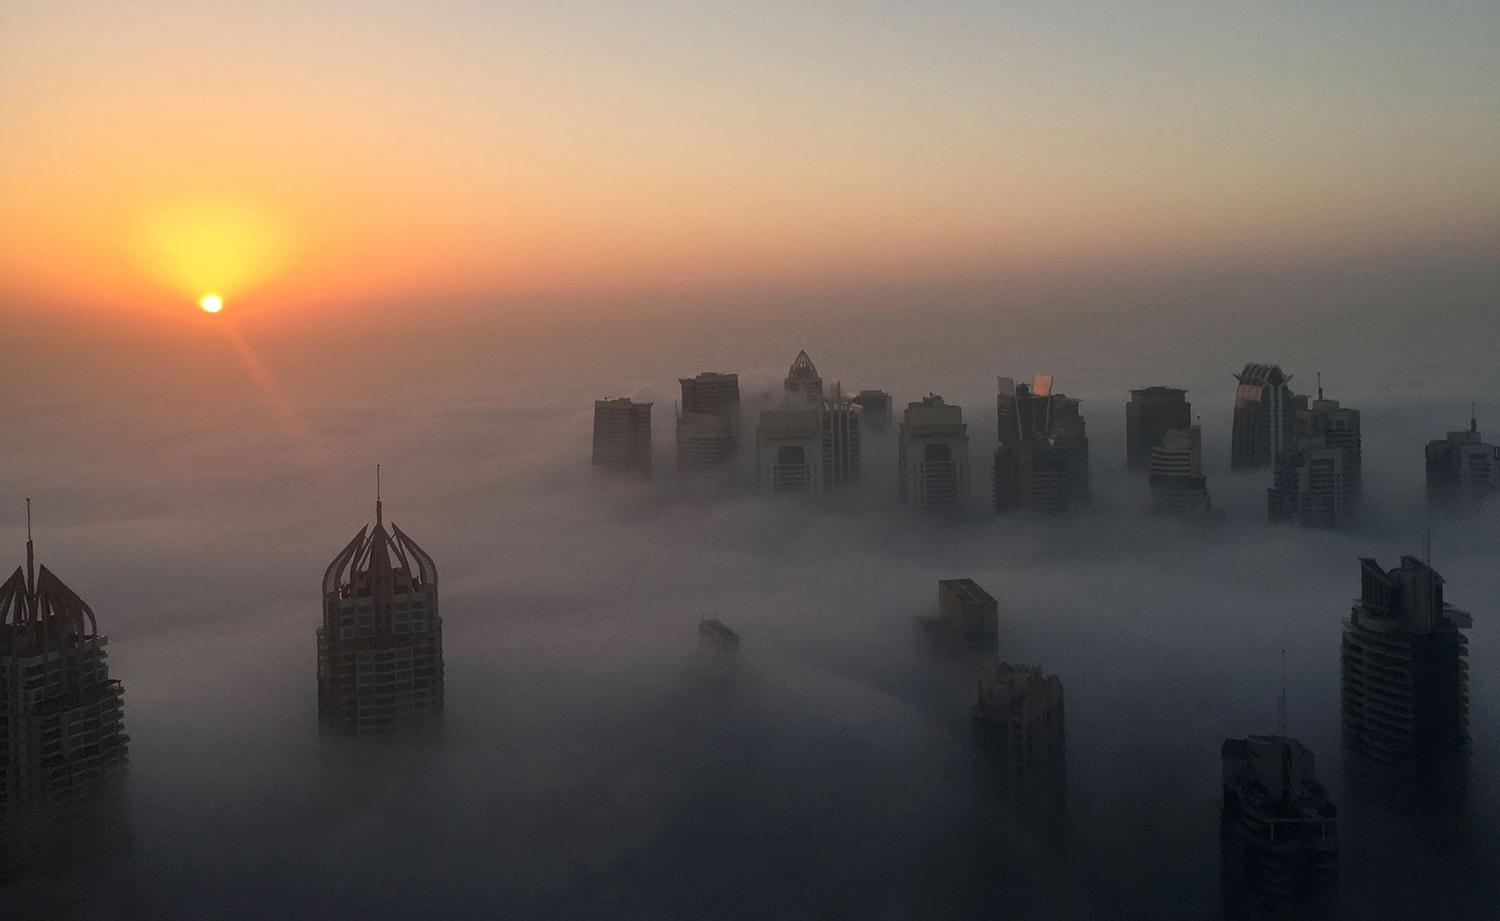 TOPSHOT - The sun rises behind skyscrapers amidst the clouds on a foggy morning in Dubai on December 5, 2016. / AFP PHOTO / RENE SLAMA / TT / kod 444